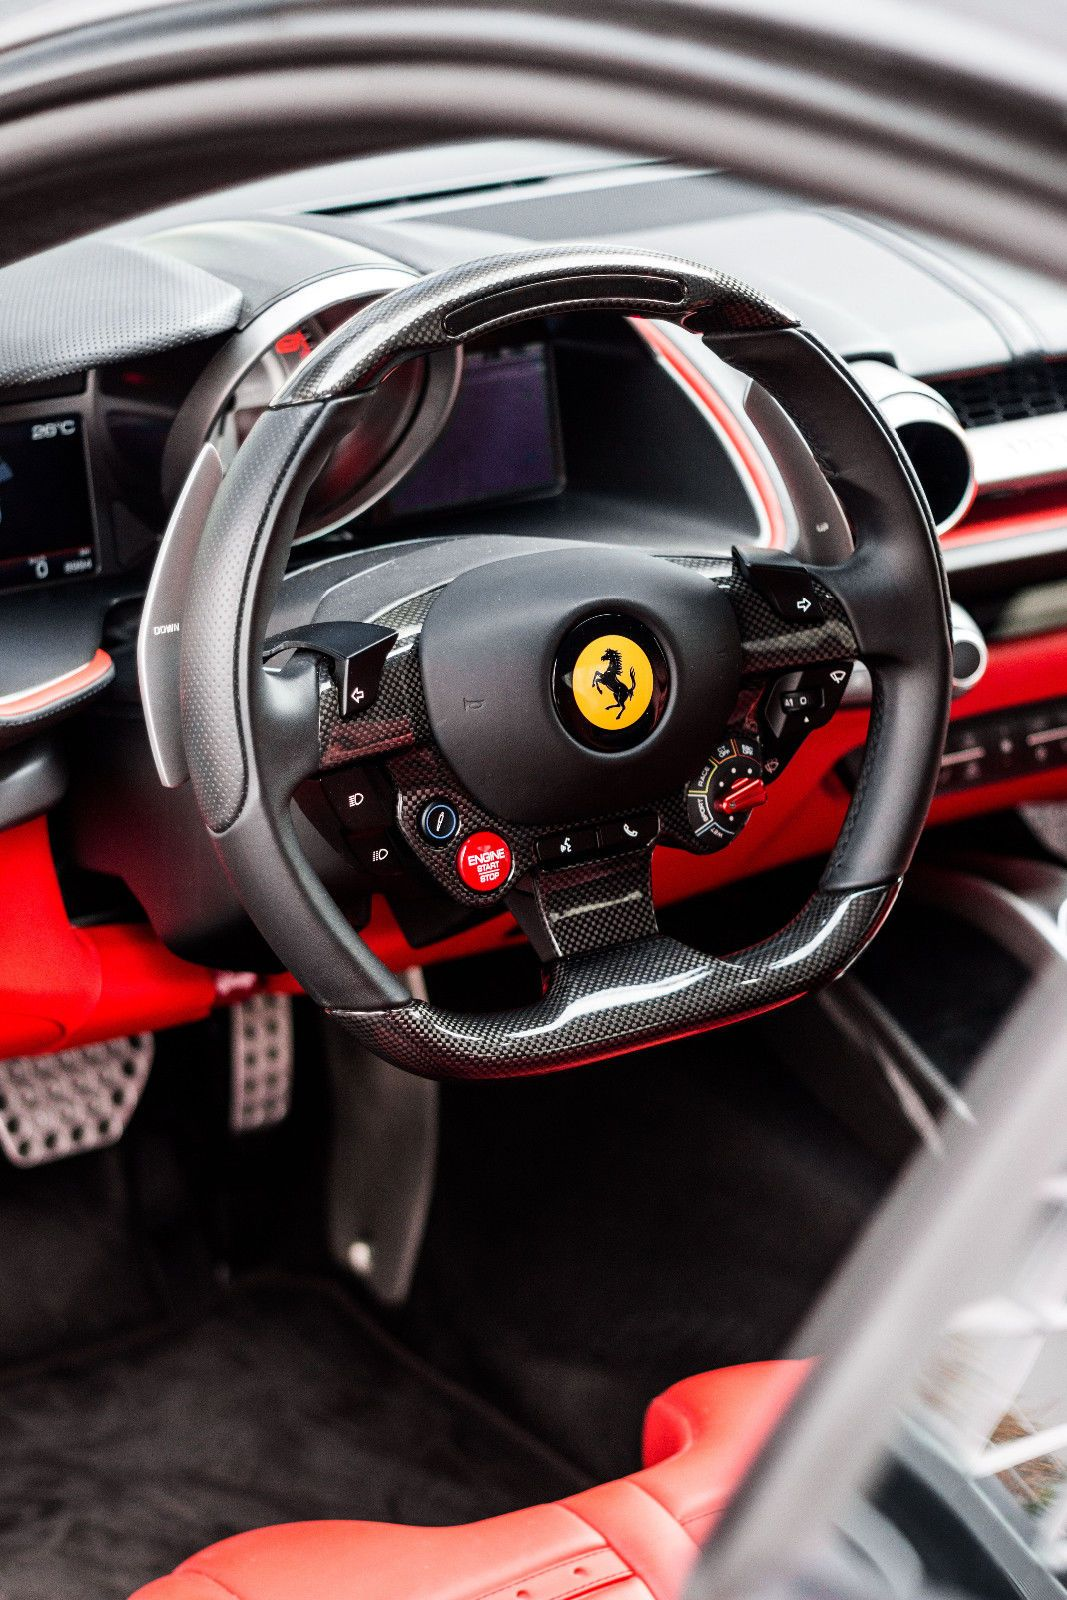 Ferrari 812 Superfast Interior : ferrari, superfast, interior, Ferrari, Superfast, Luxury, Pulse, France, LuxuryPulse., Ferrari,, Super, Cars,, Sharing